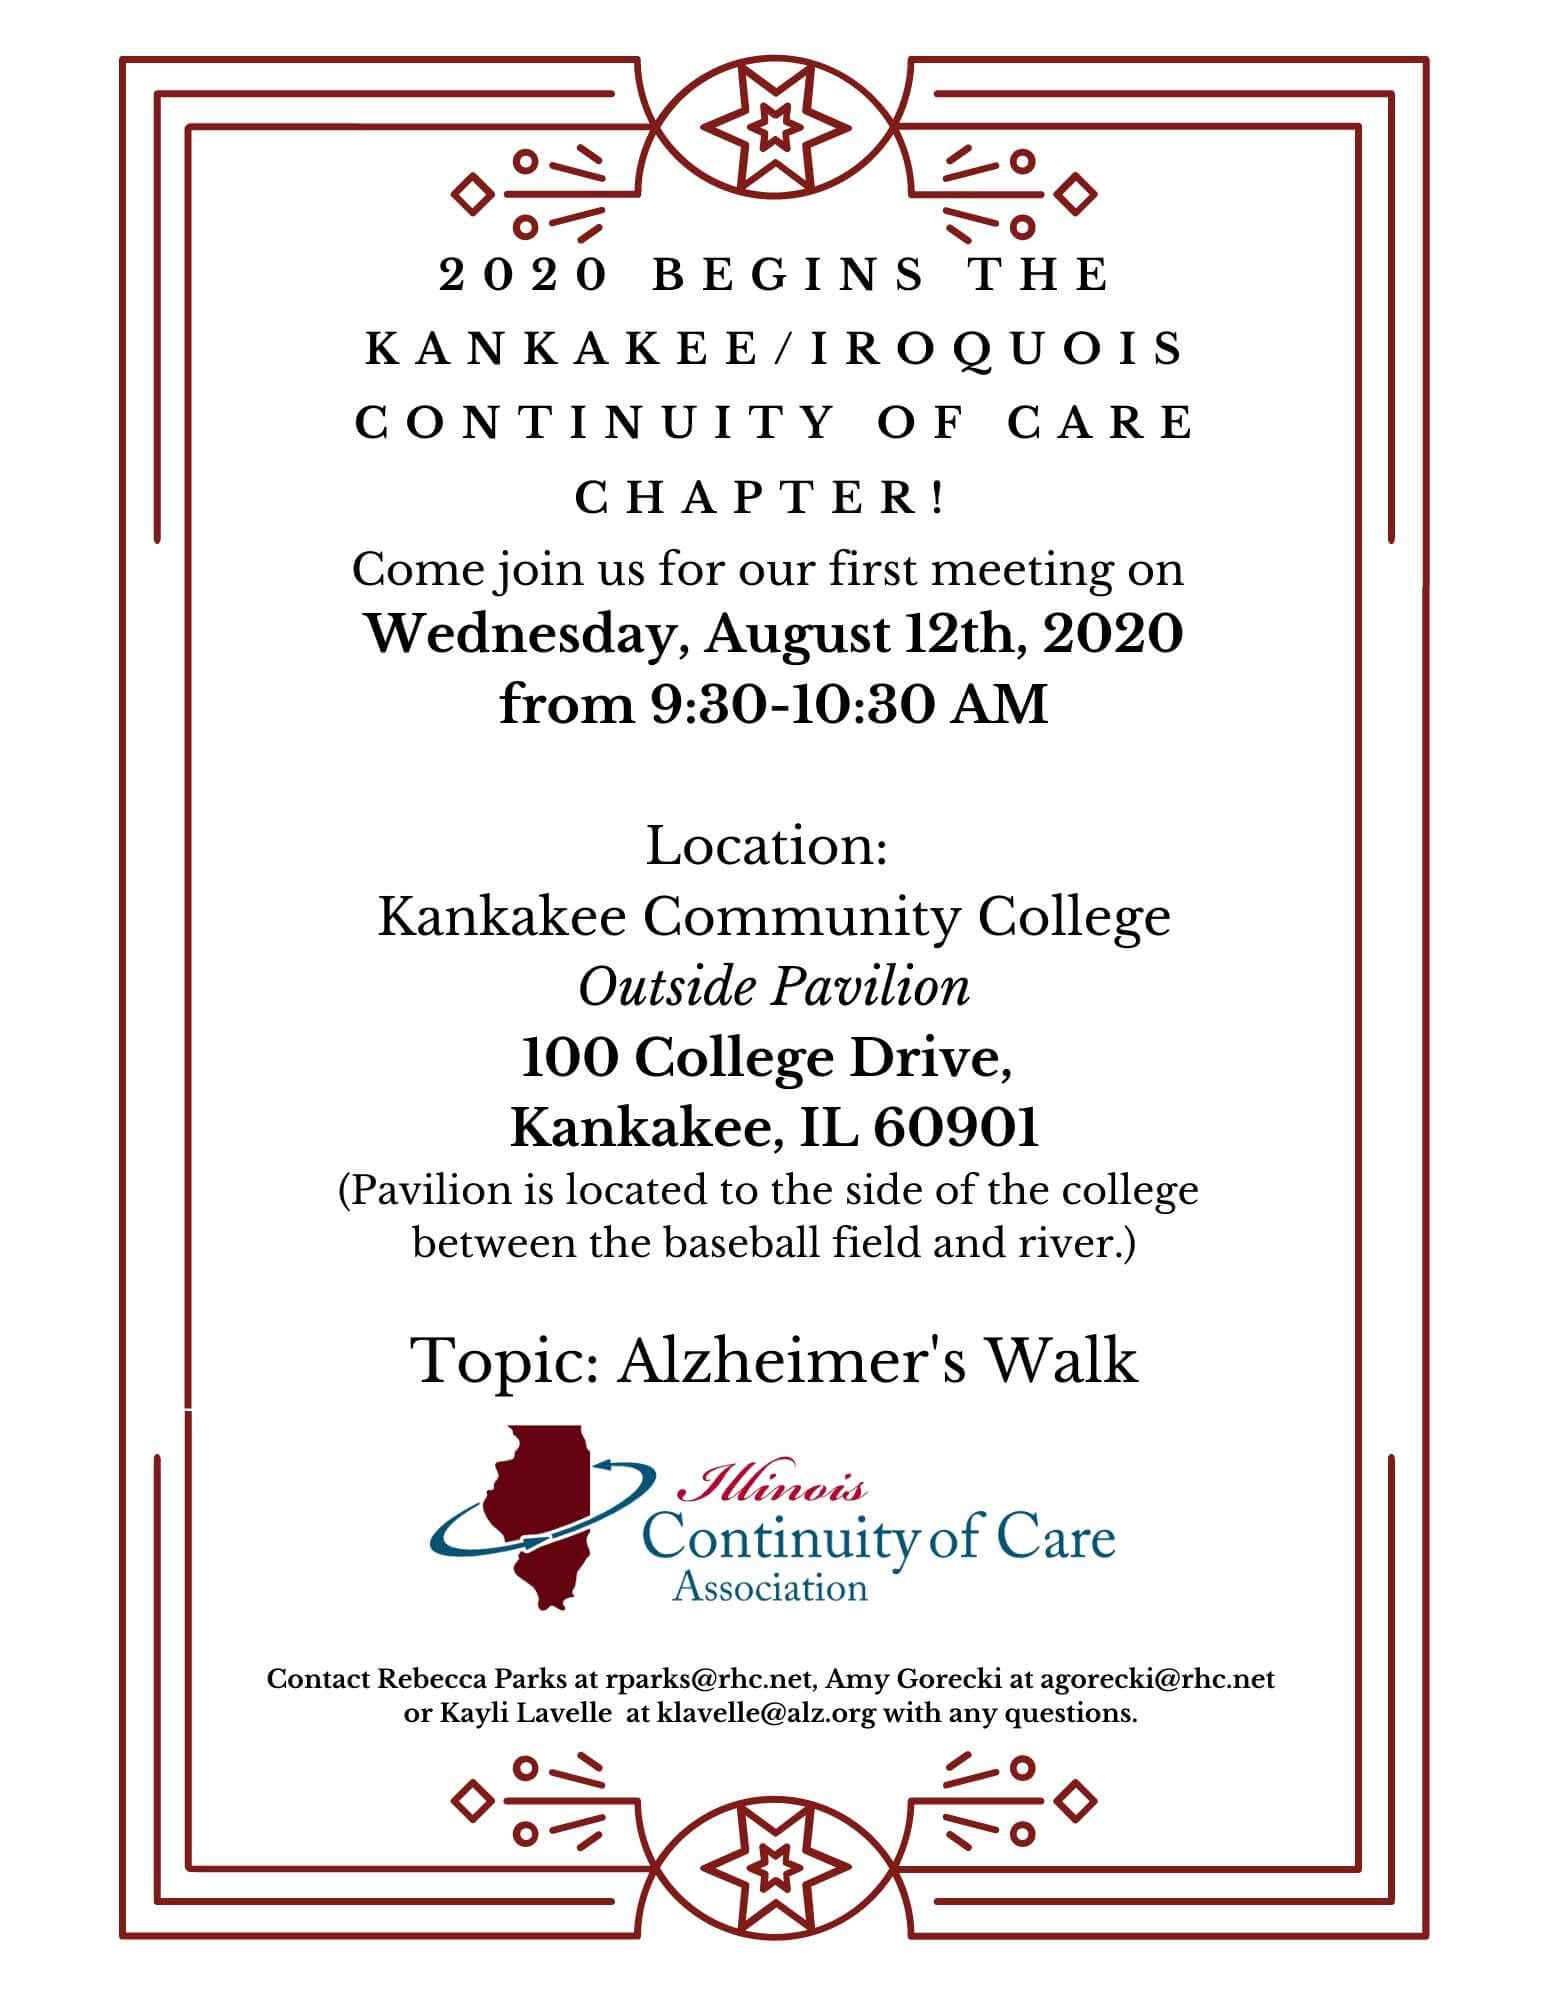 Inaugural Meeting for Kankakee/Iroquois Chapter